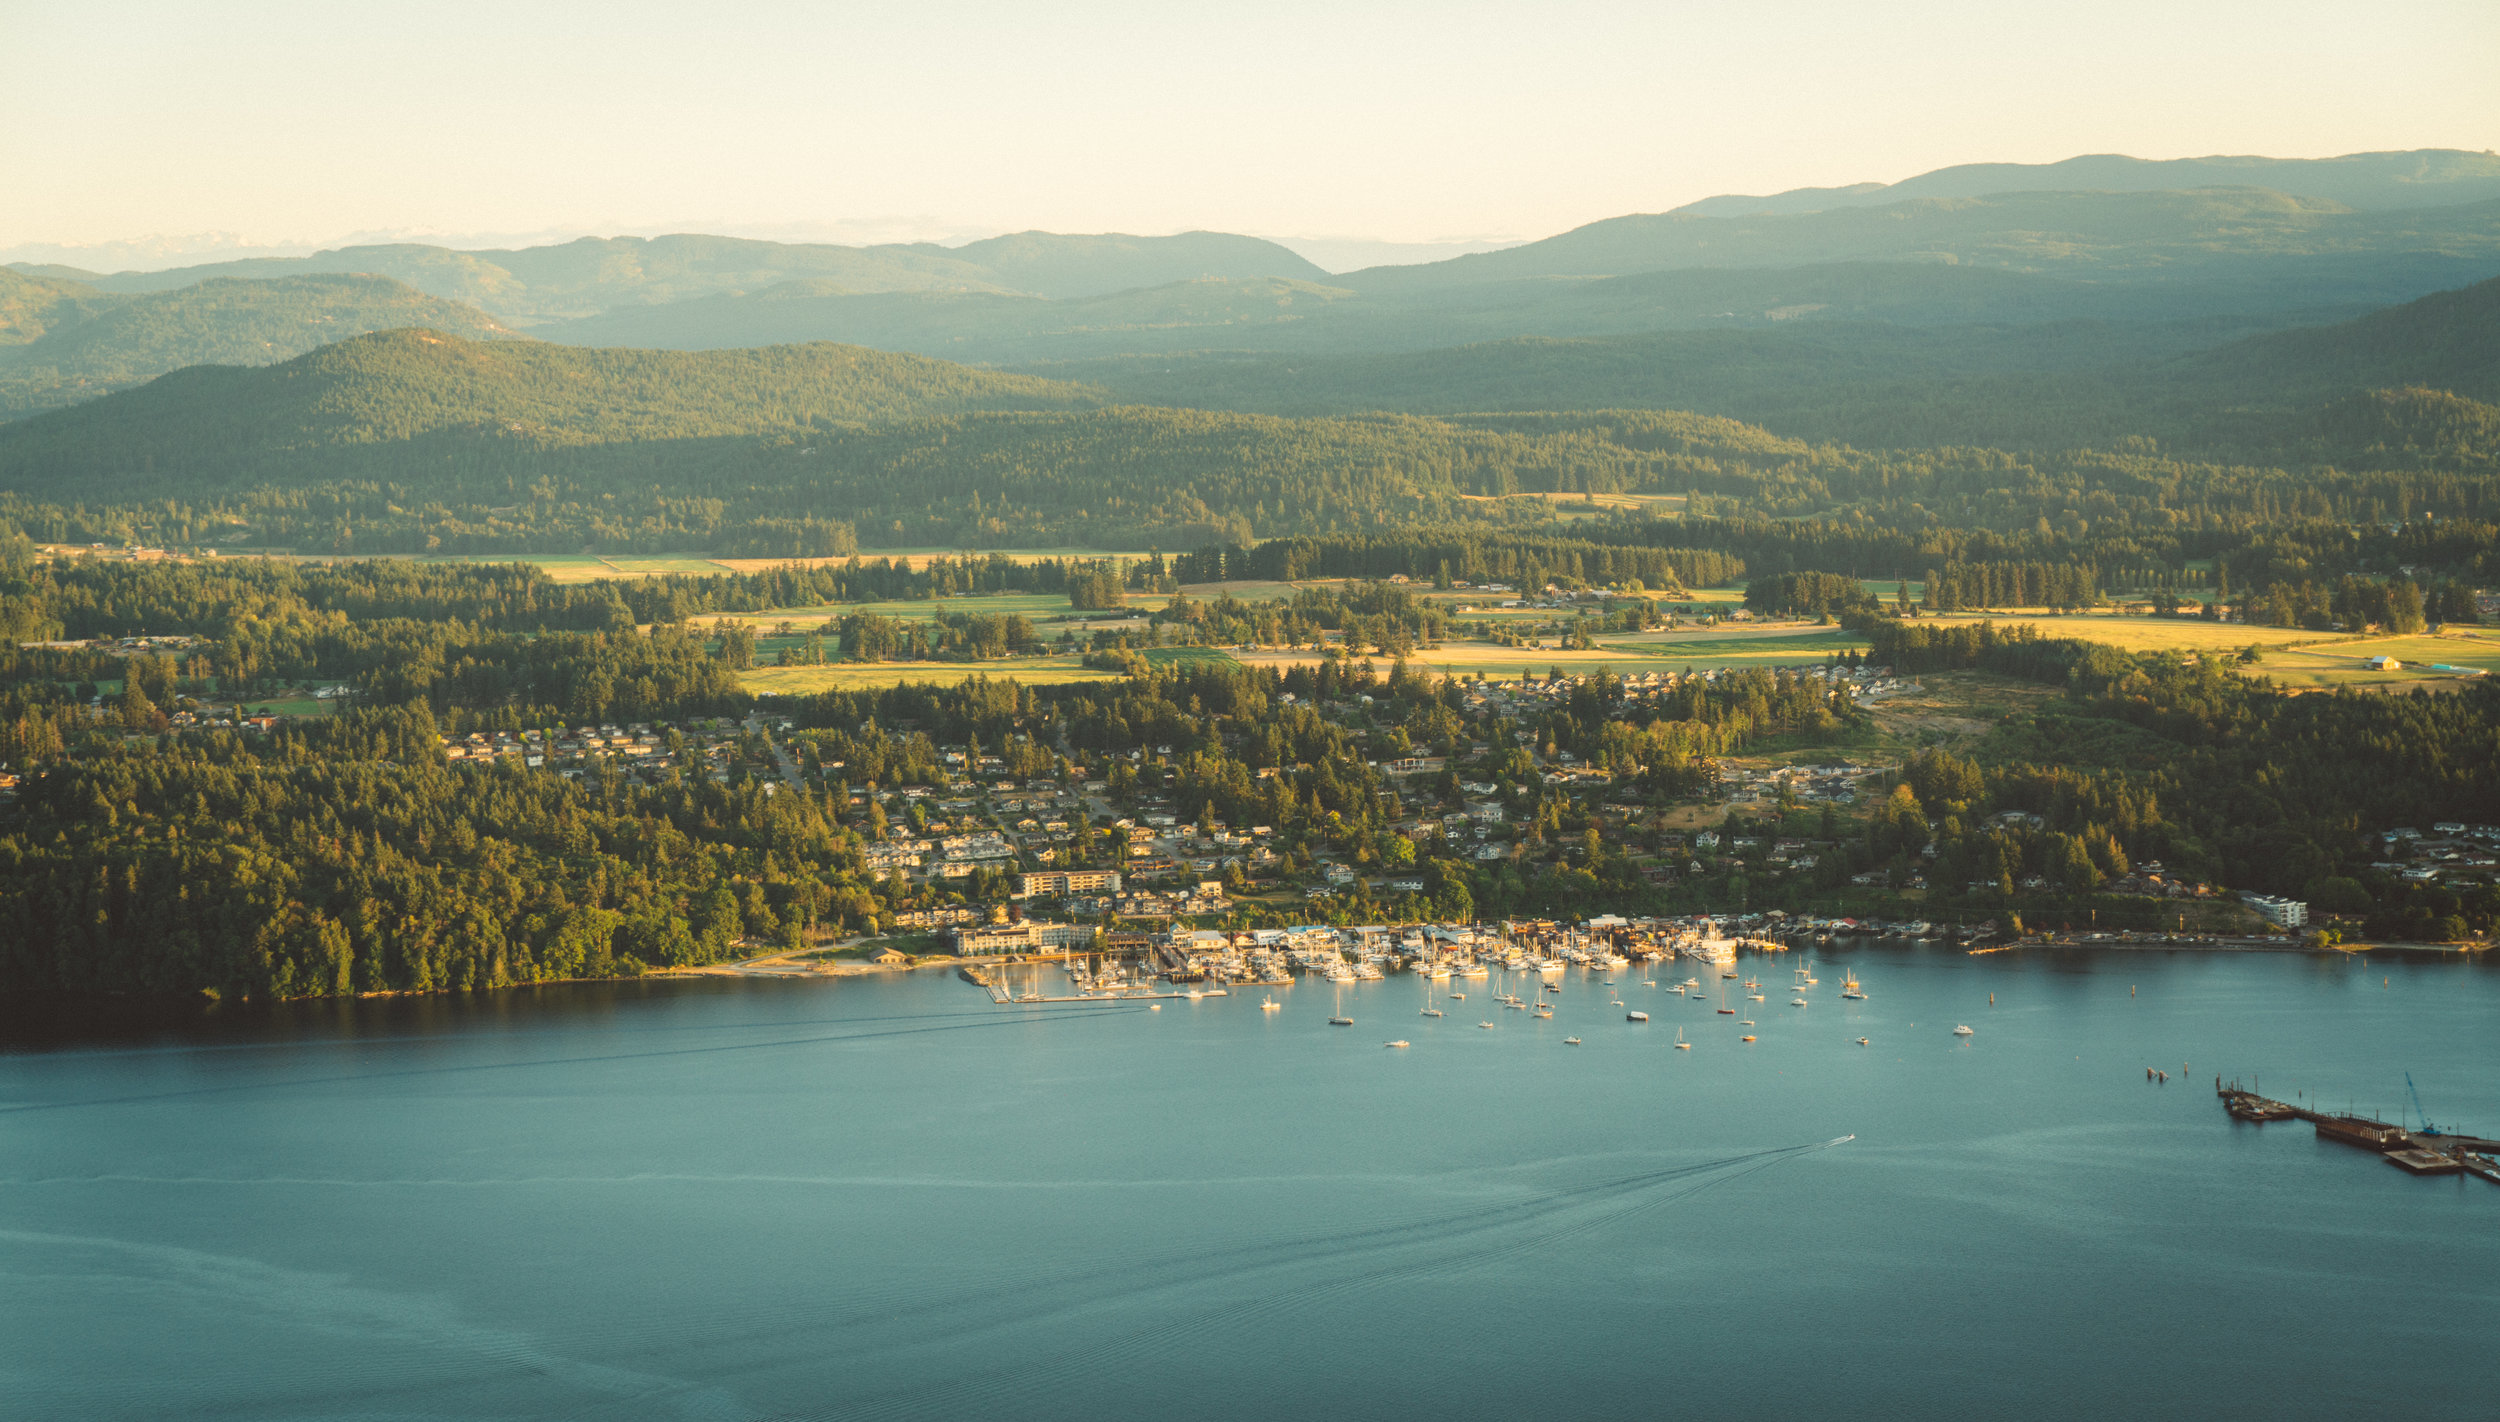 Cowichan Bay, the town of.